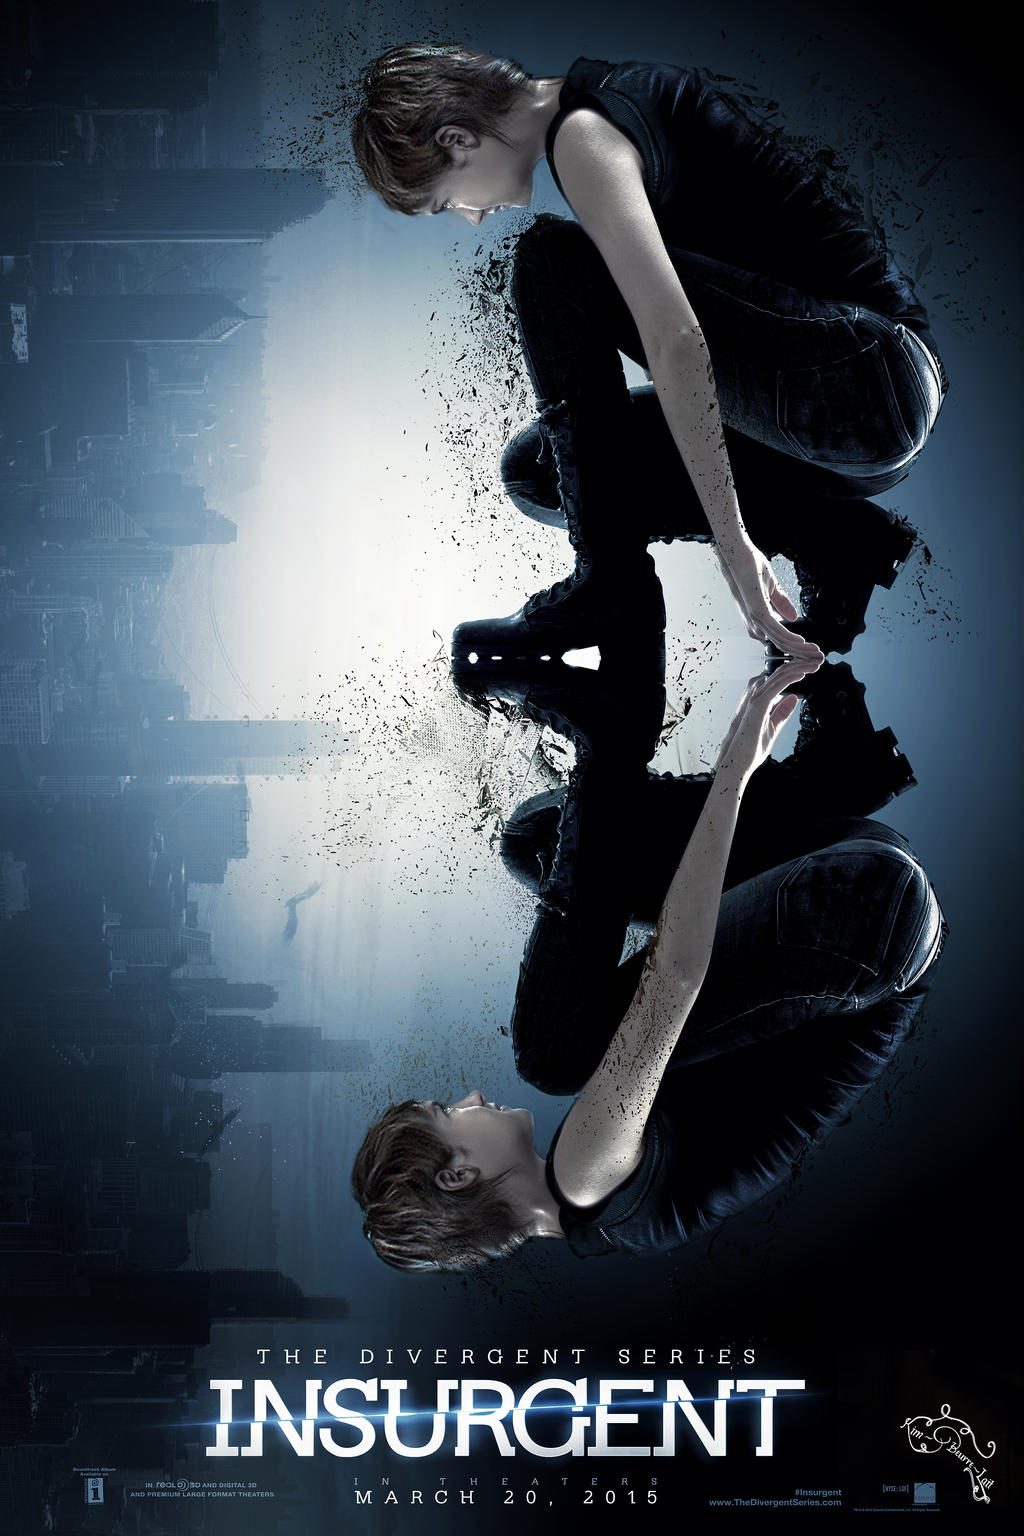 Insurgent Movie Poster | www.imgkid.com - The Image Kid ...